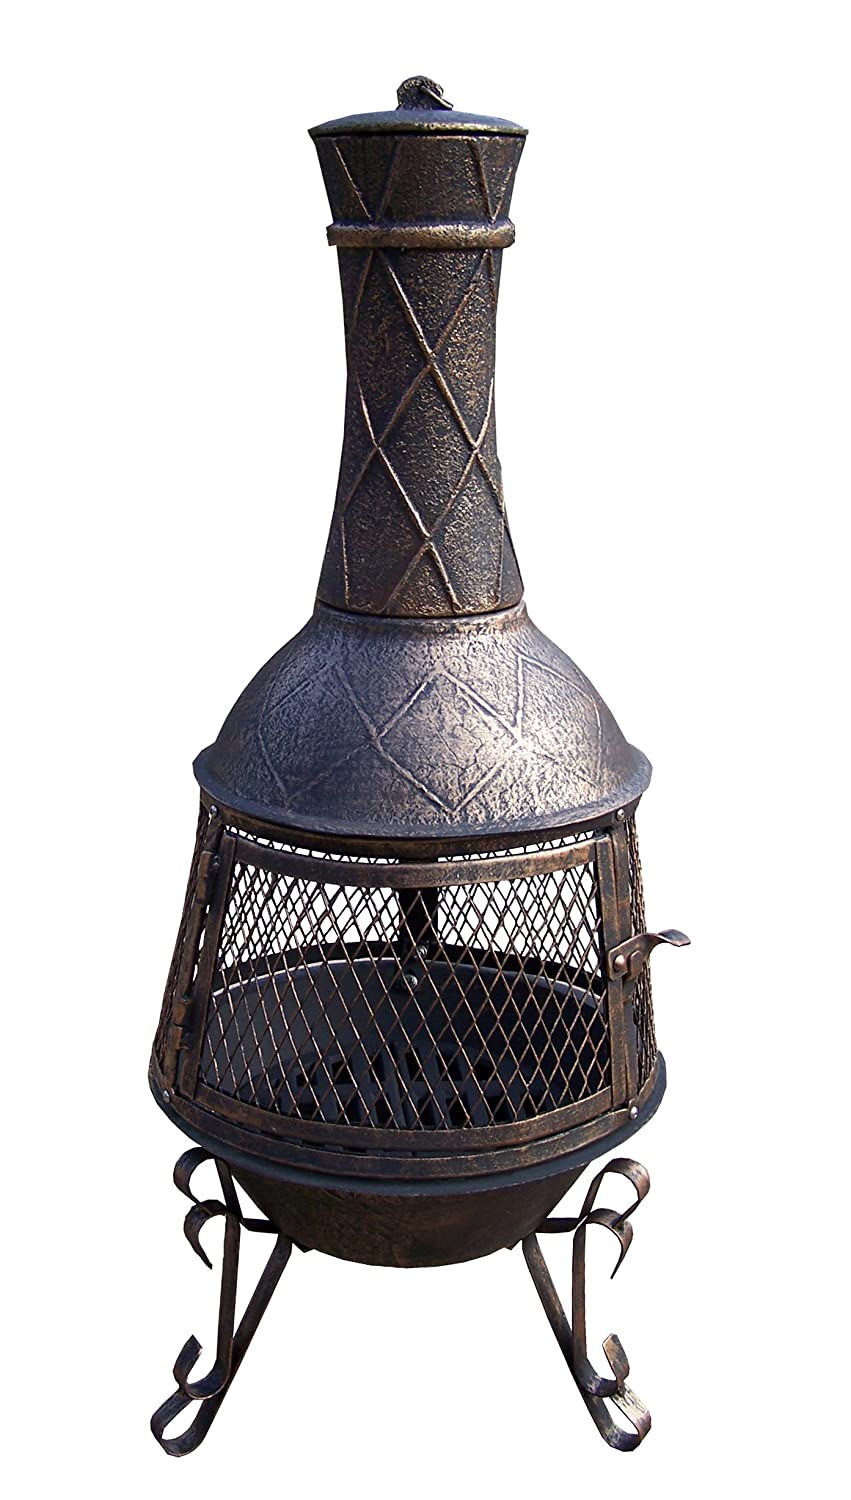 Oakland Living Avignon Chimenea with full sides Spark Guard Screen and Door, Antique Bronze 8021-AB M18720